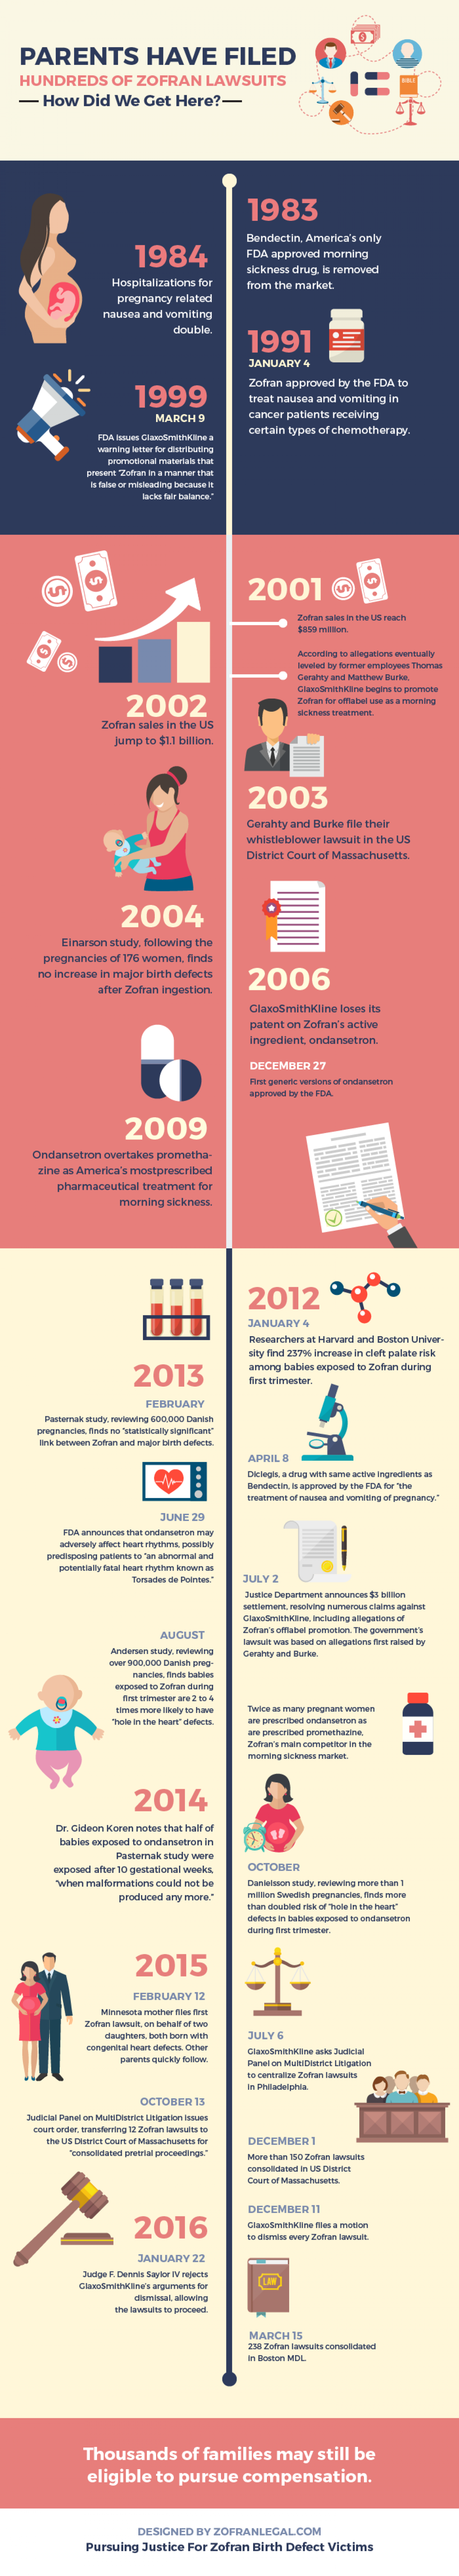 Parents Have Filed Hundreds of Zofran Lawsuits - How Did We Get Here? Infographic